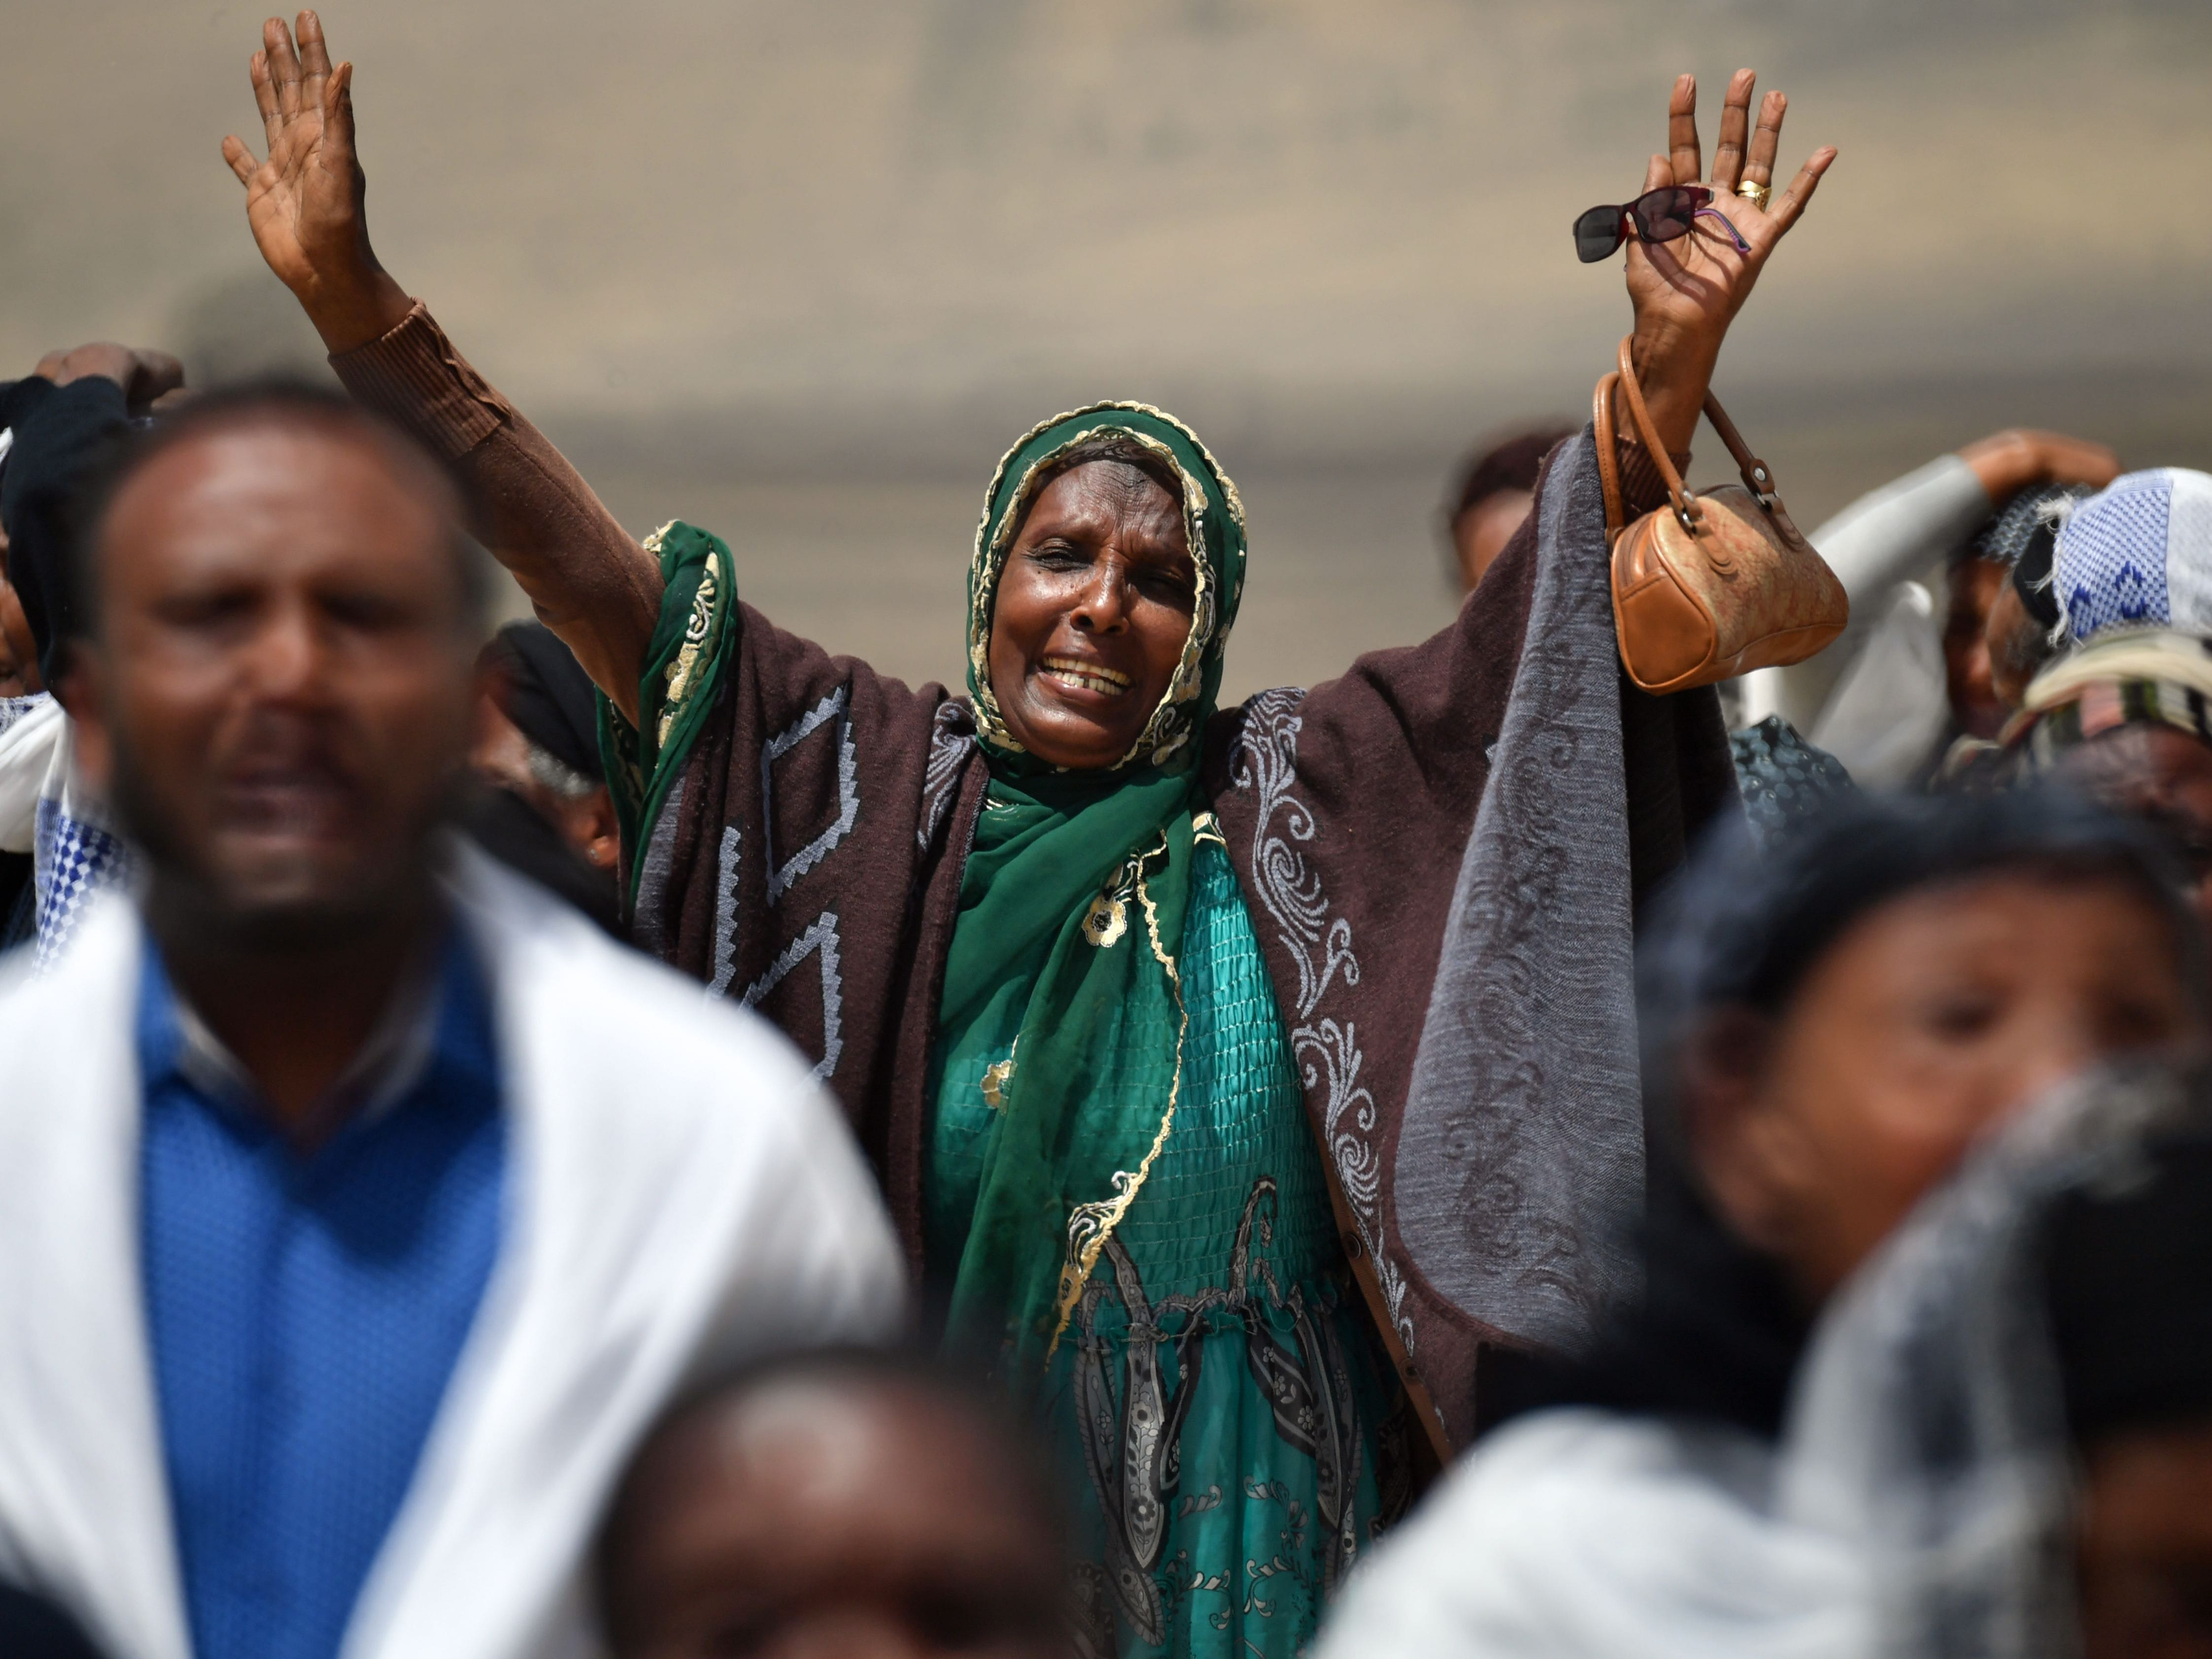 A distraught relative reacts as she arrives at the crash site of the Ethiopian Airlines operated Boeing 737 MAX aircraft, at Hama Quntushele village in Oromia region, on March 14, 2019.